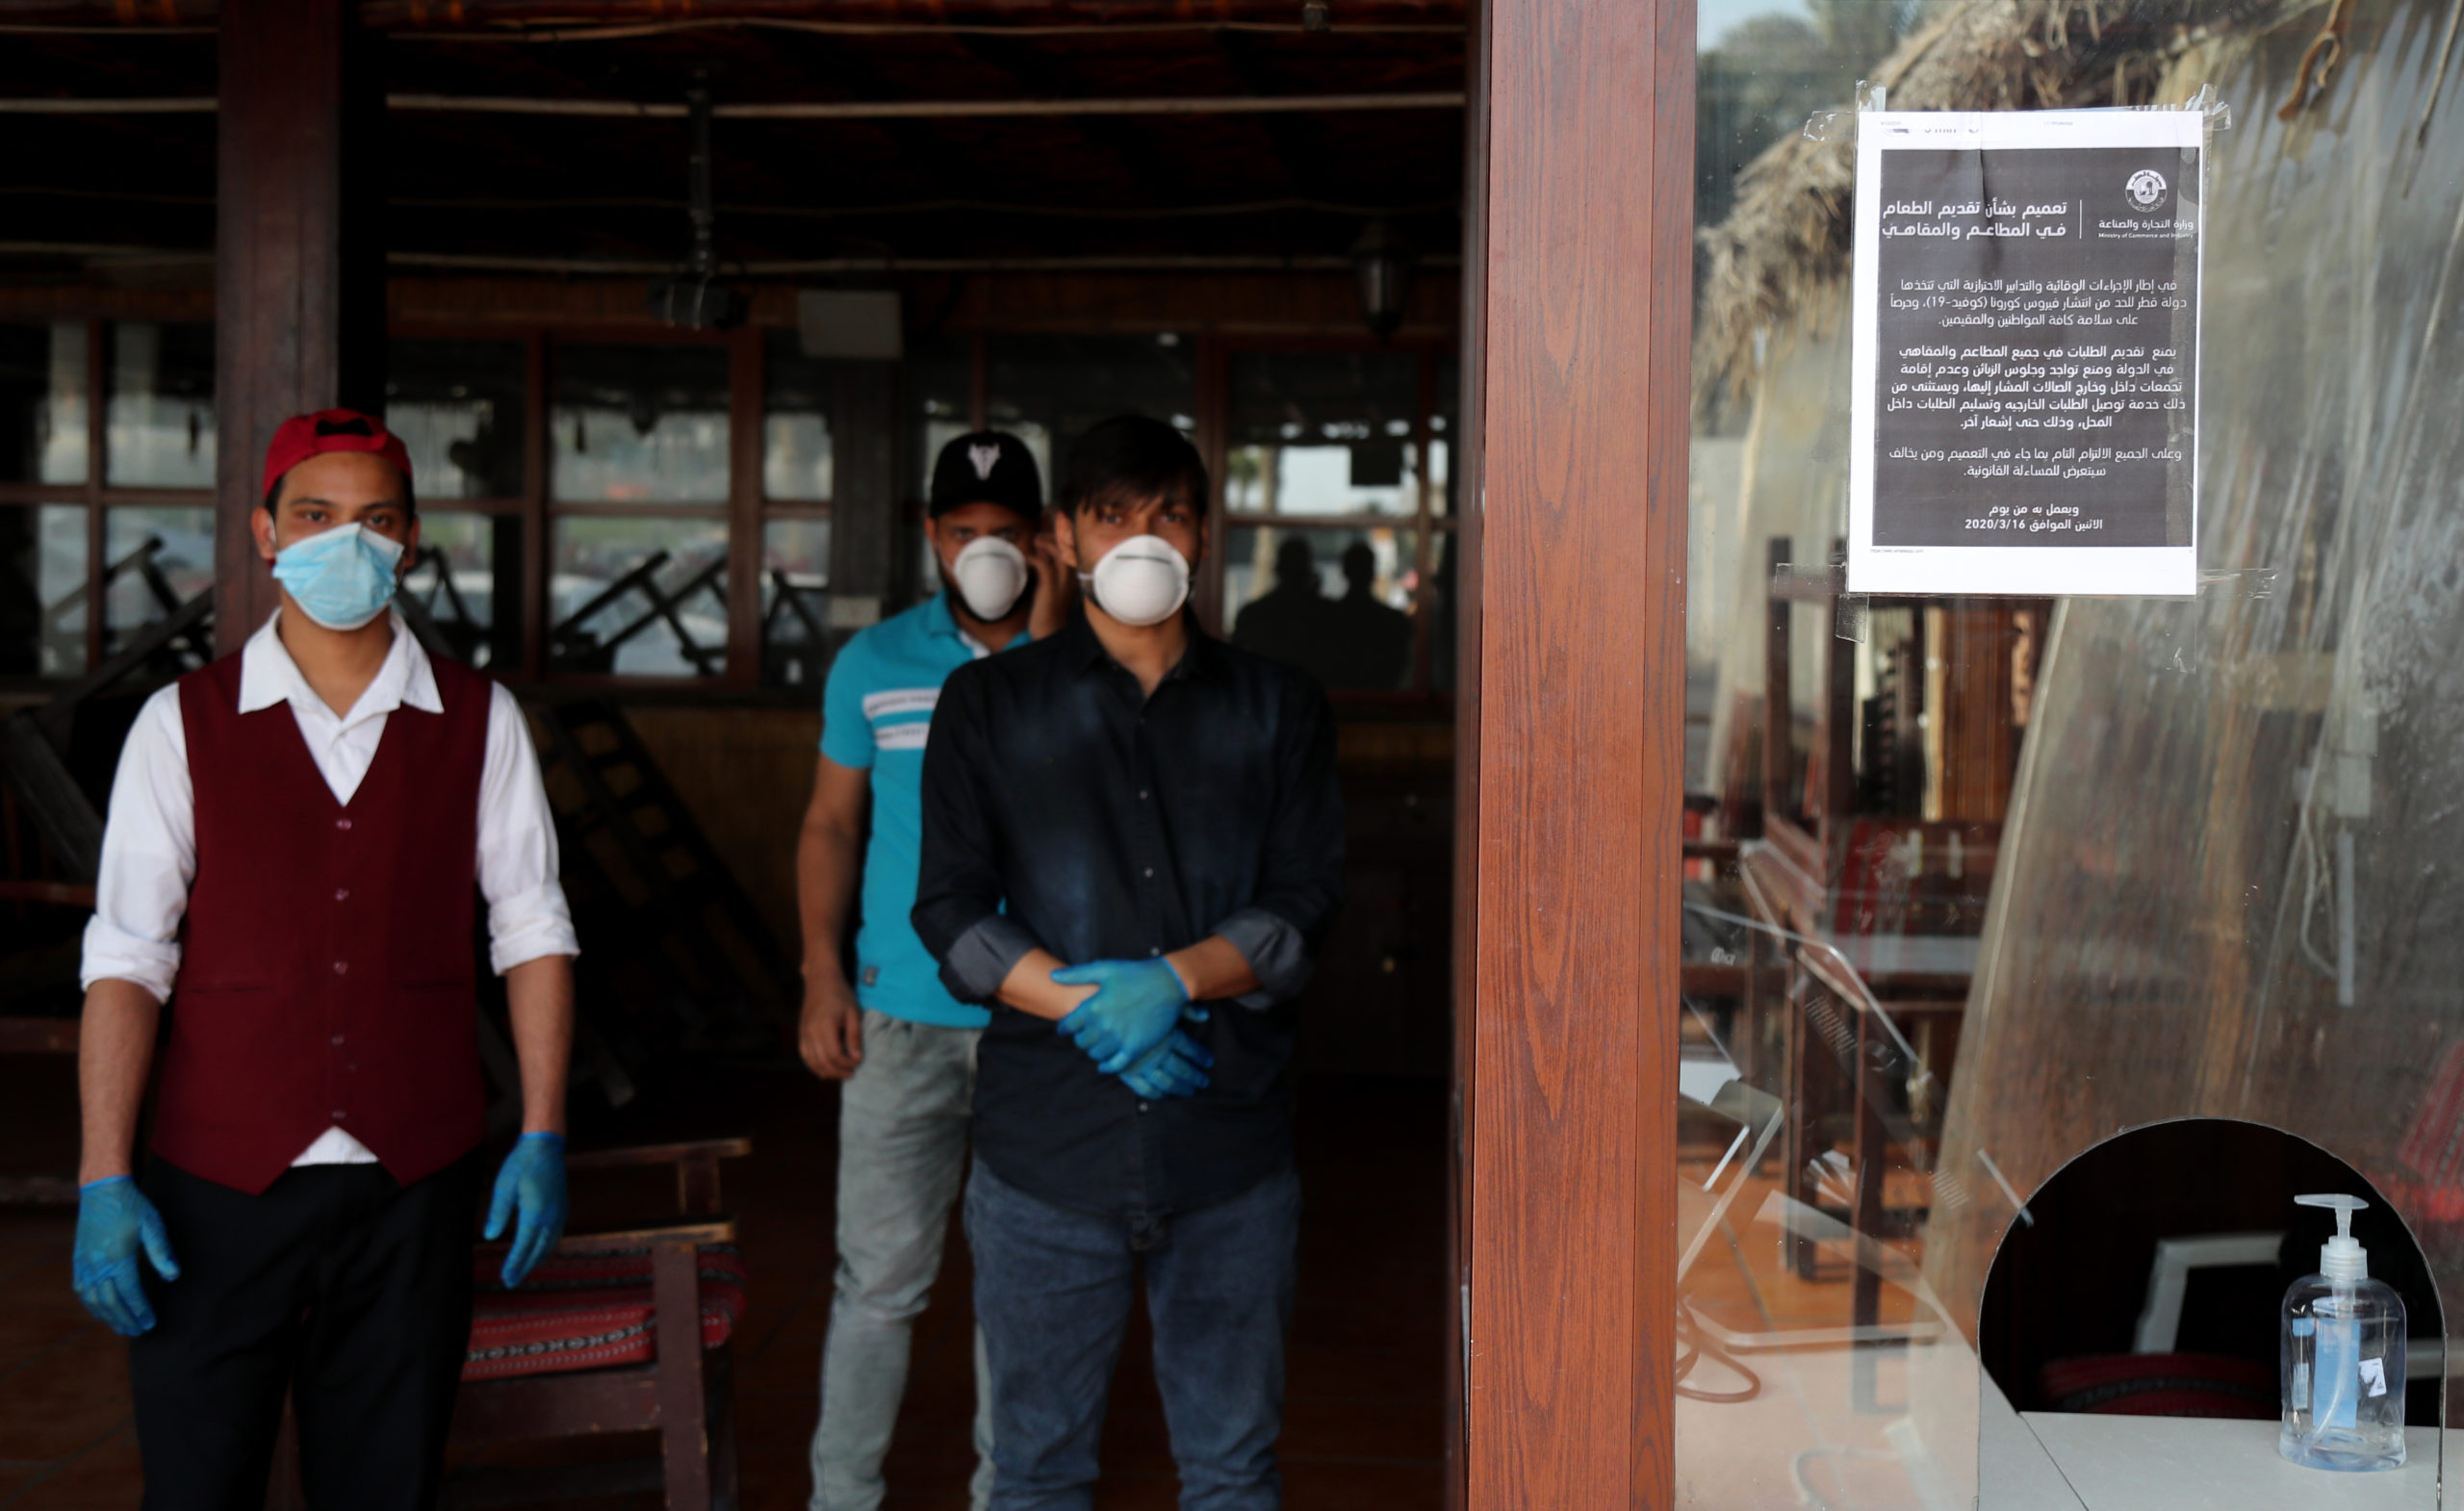 Migrant workers in Gulf countries are blocked from calling their families on the internet during coronavirus pandemic.